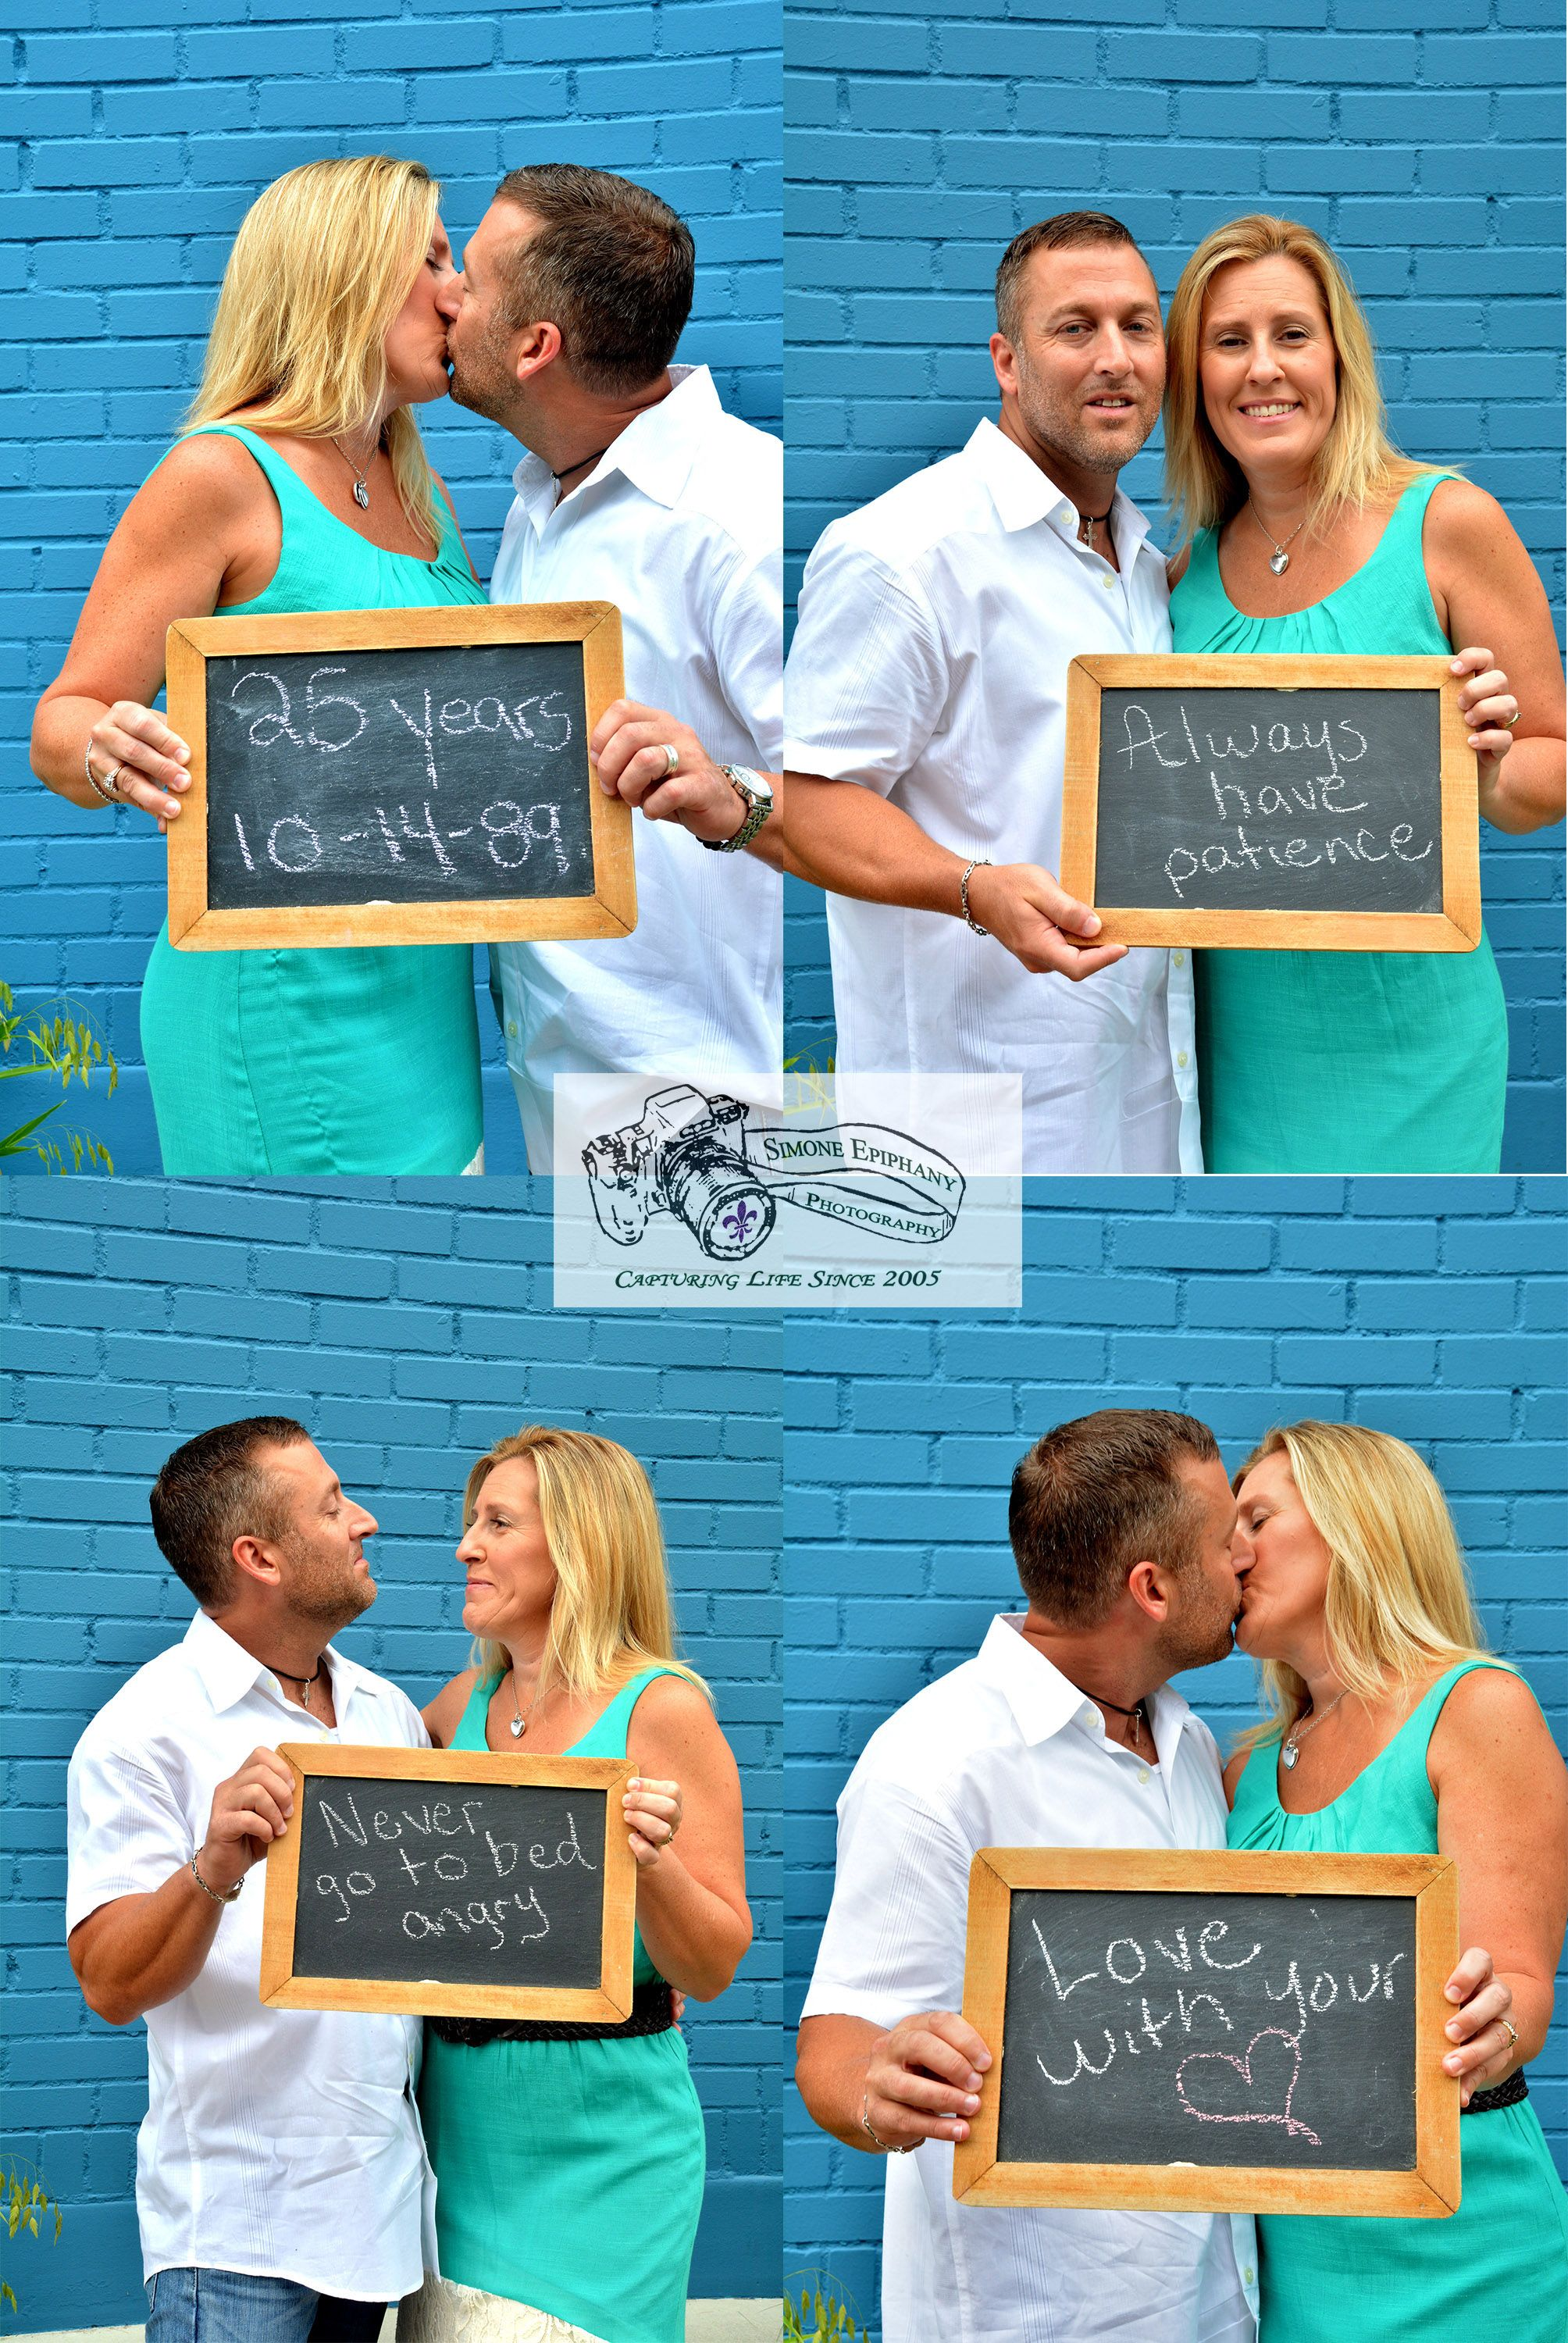 Couple Celebrating Their 25th Wedding Anniversary Give Advice For Newly Weds Photos 25th Wedding Anniversary Anniversary Photoshoot Wedding Anniversary Photos